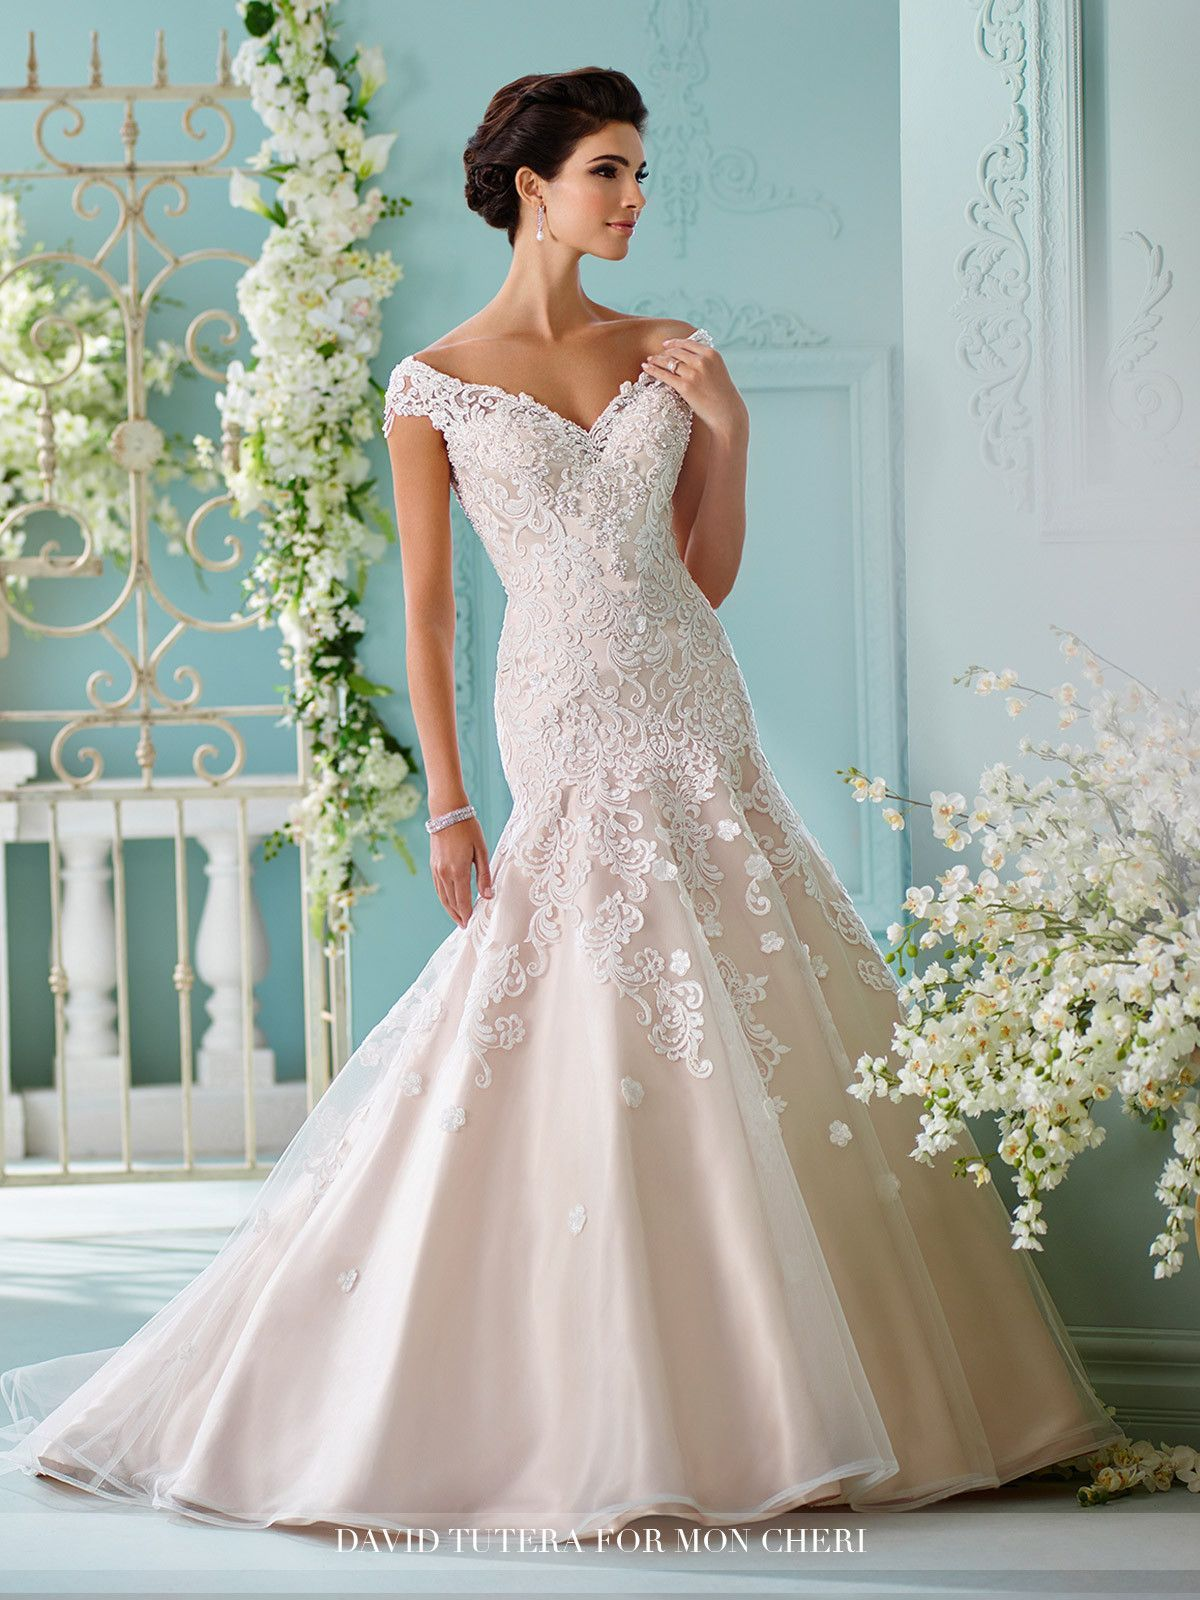 David Tutera - Sialia - 216254 - All Dressed Up, Bridal Gown | David ...